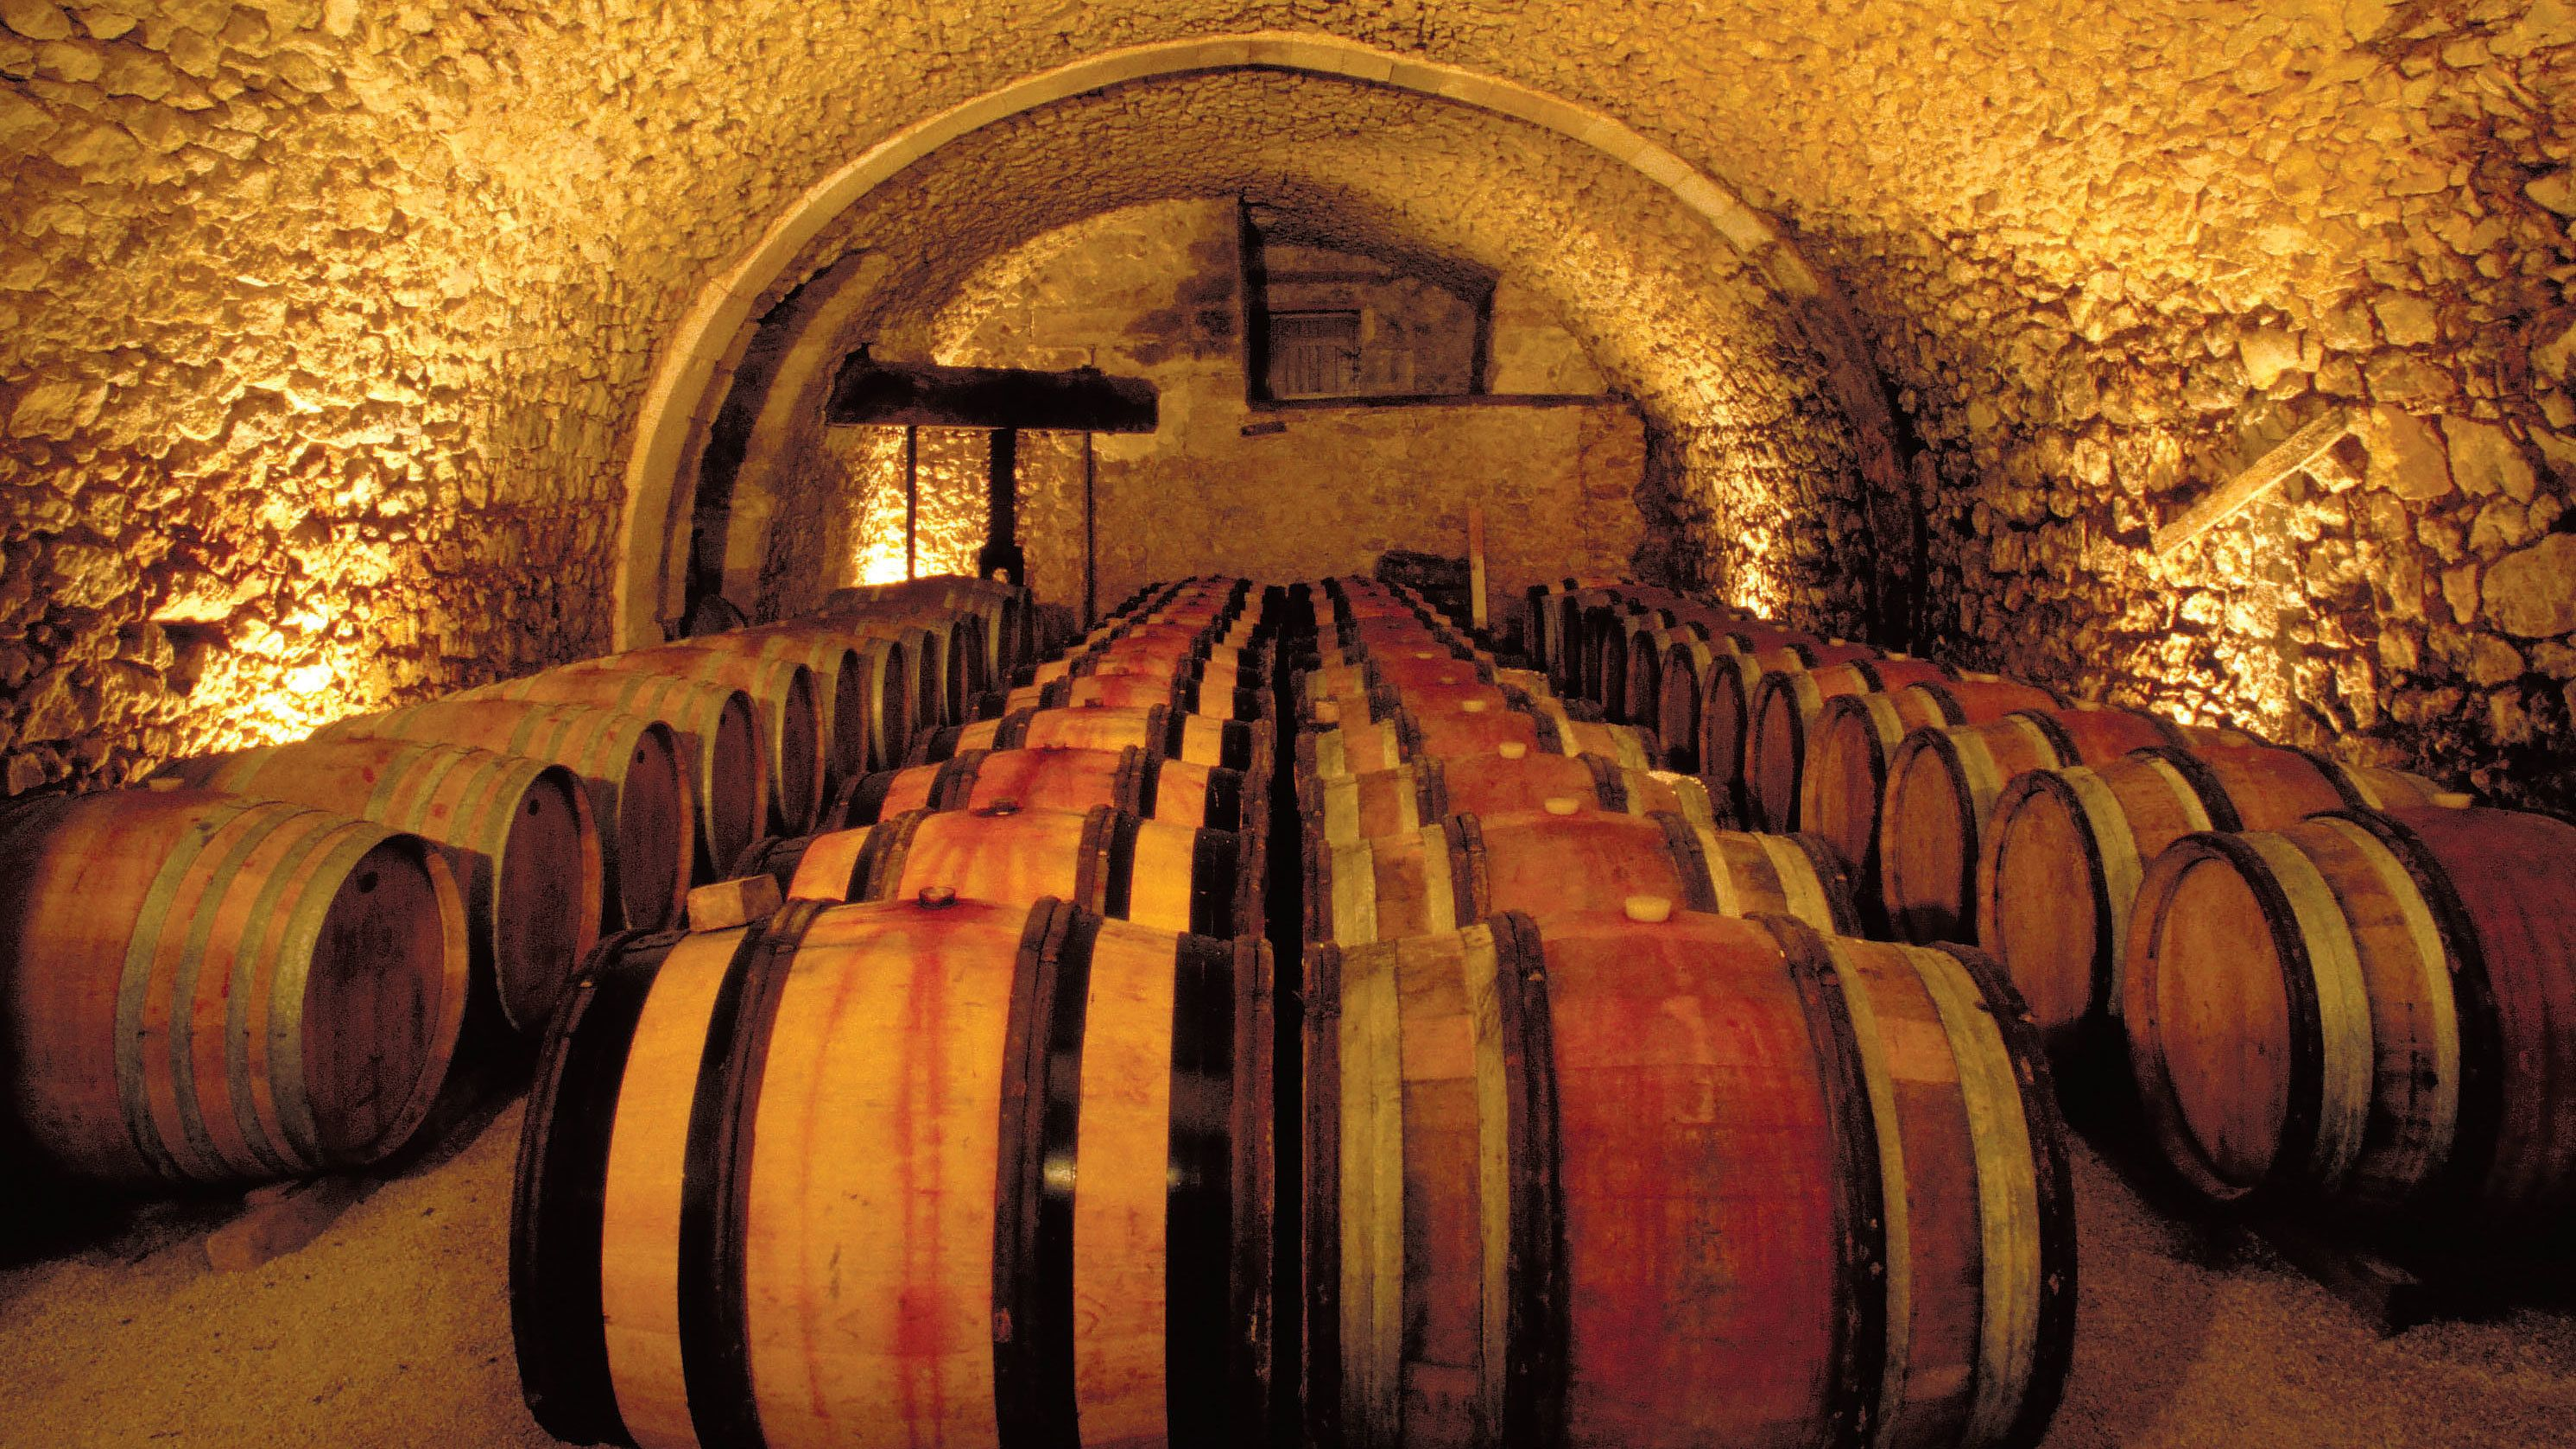 Underground Chateauneuf du Pape wine cellar in France